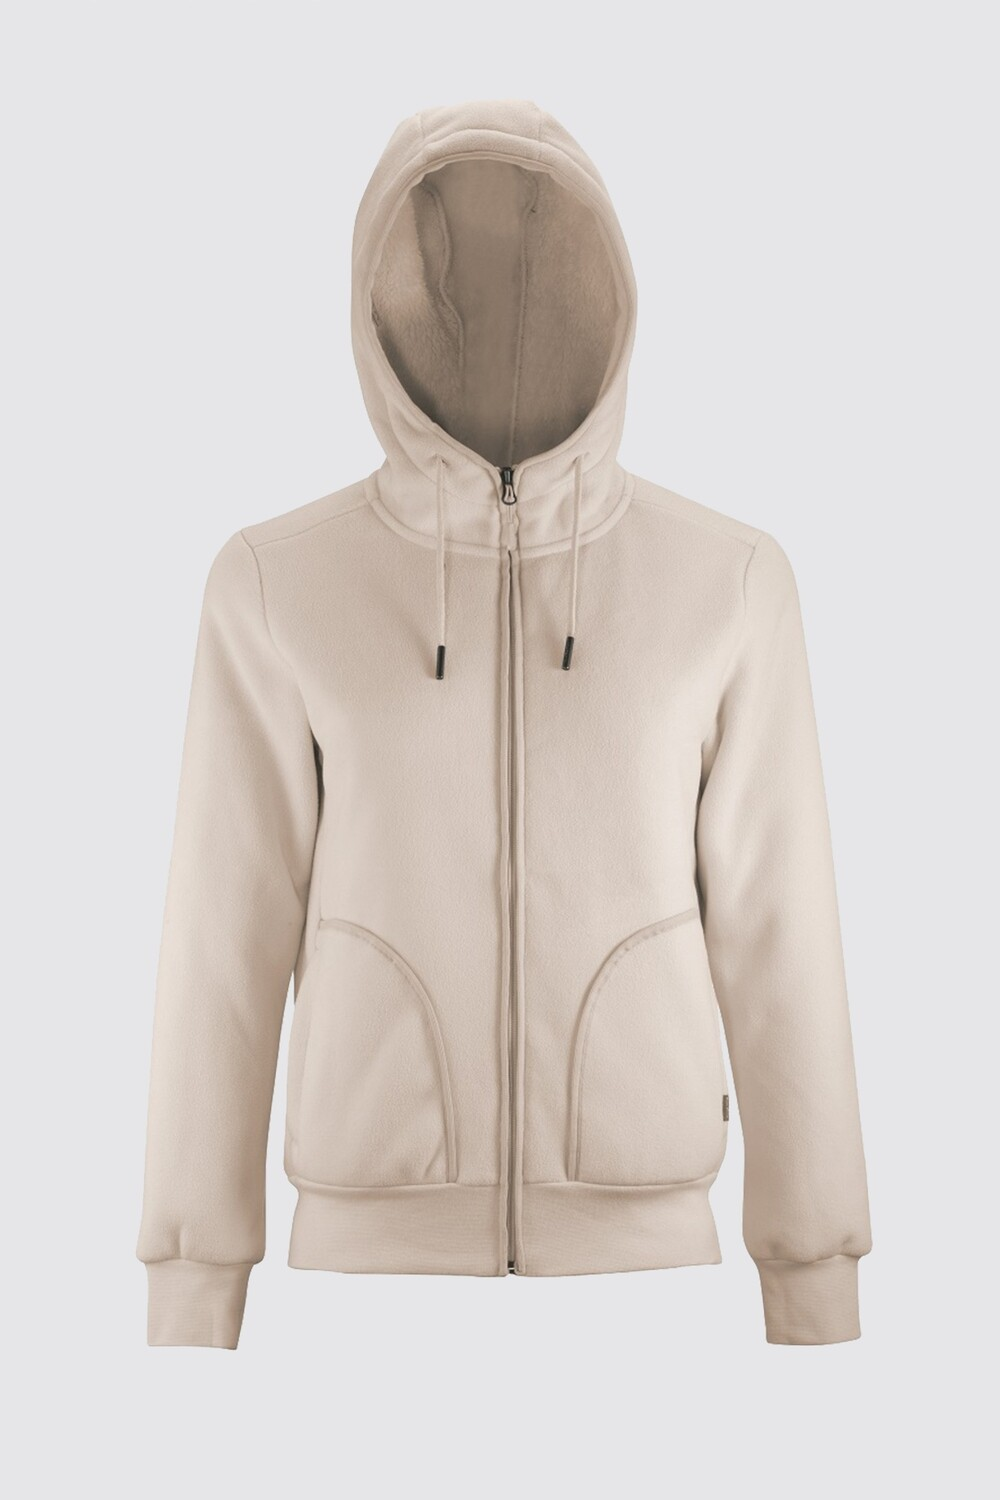 Switcher women hooded sweater jacket Altai with fur